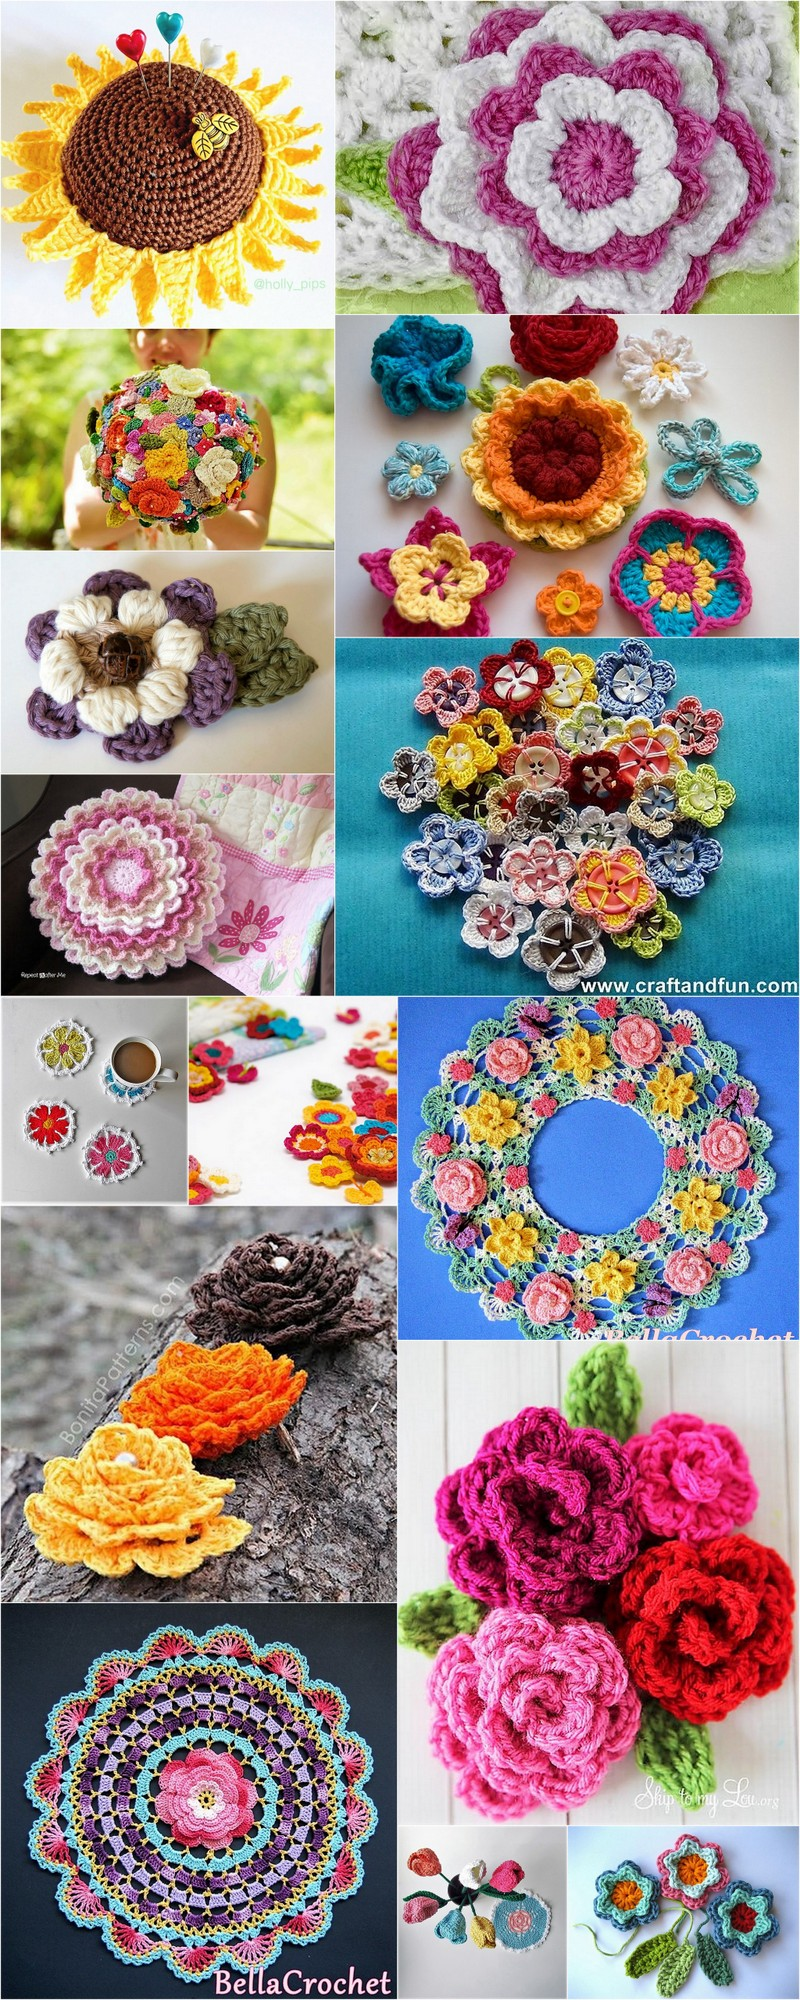 Simply Easy & Free Crochet Flower Patterns | 1001 Crochet